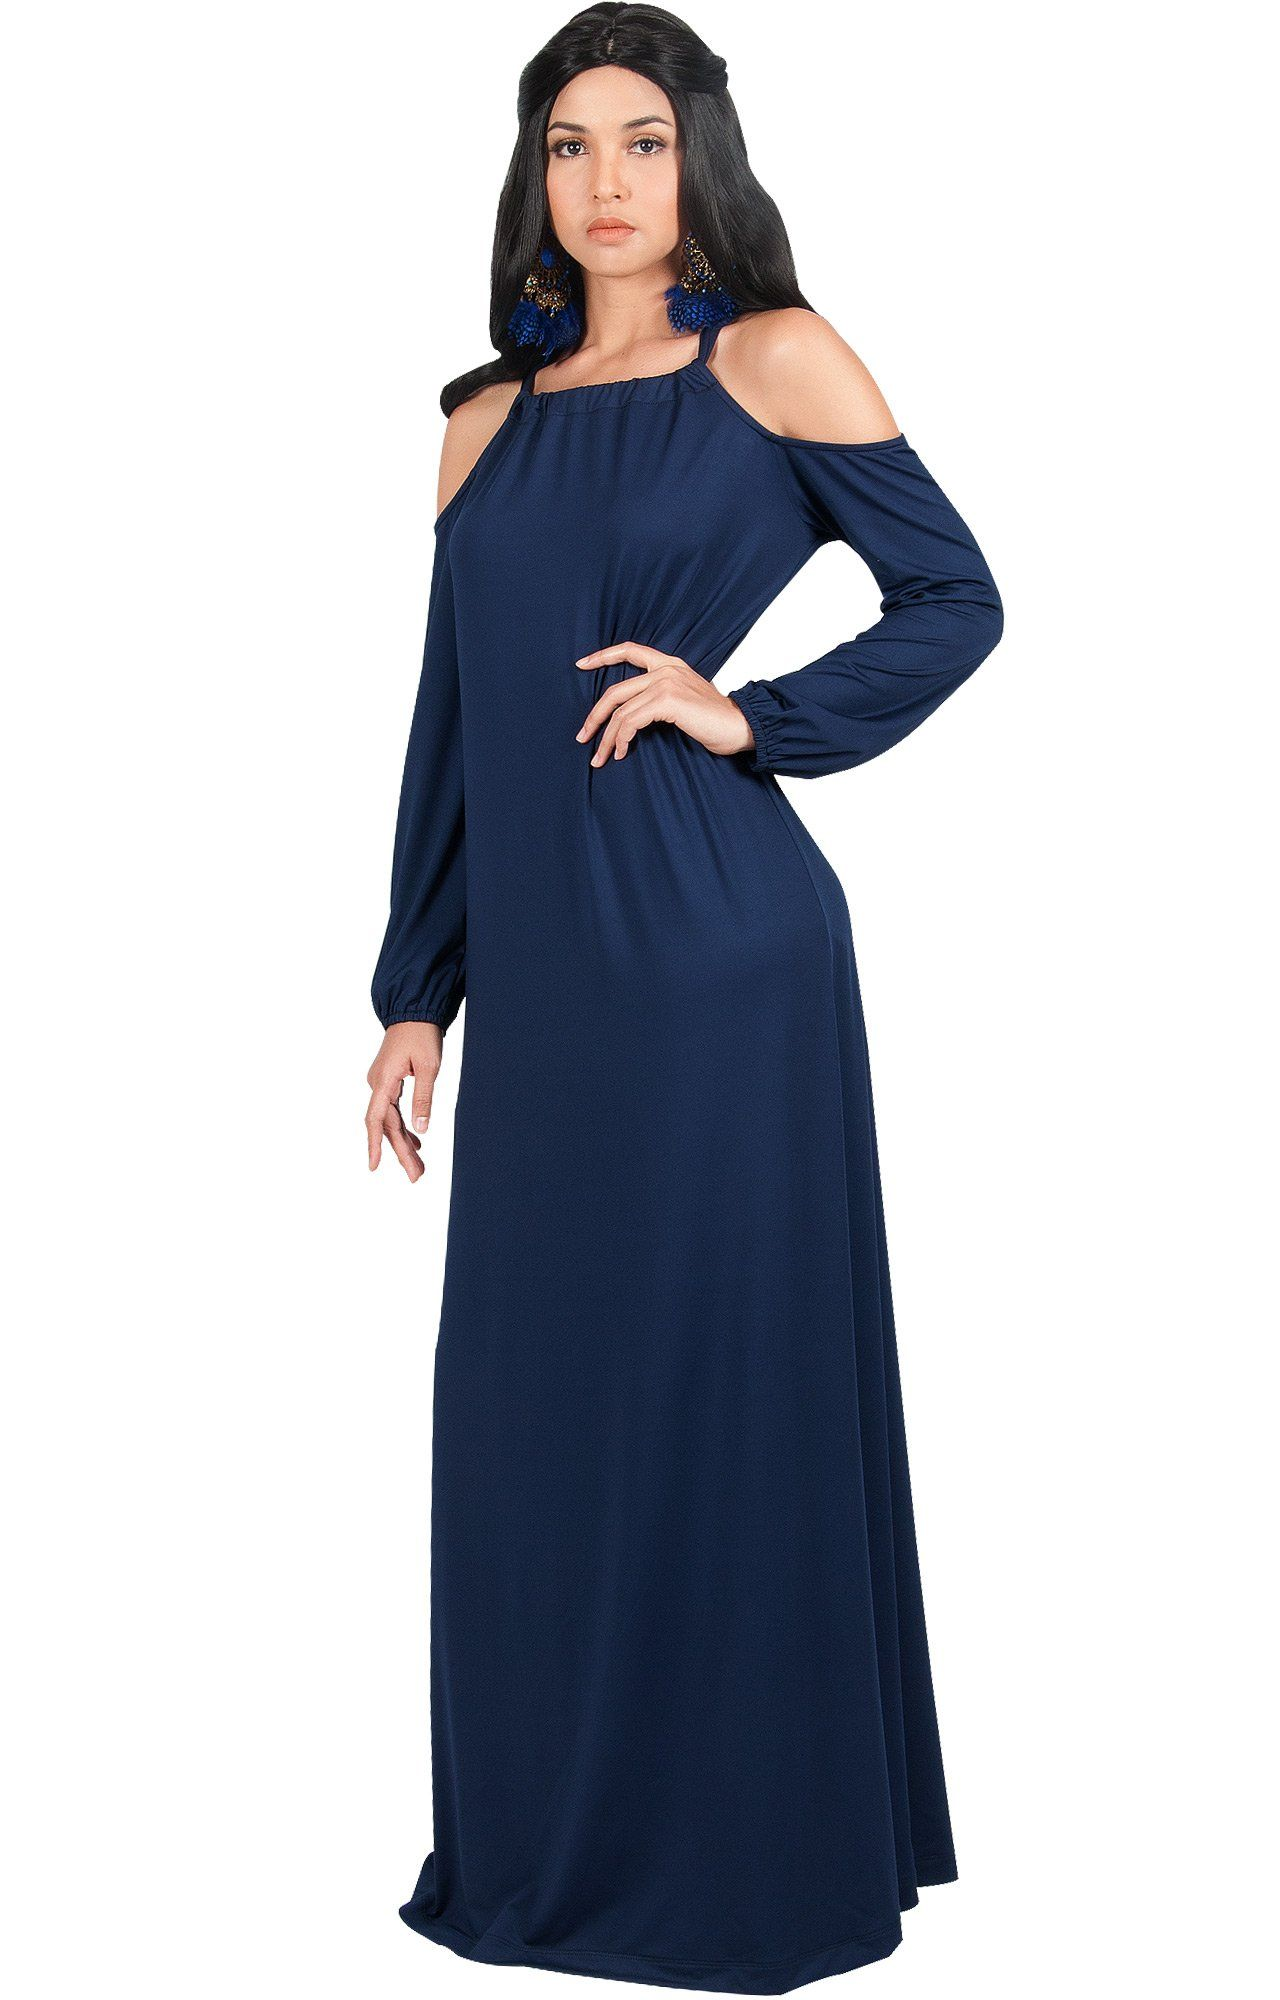 f54738a3ce KOH KOH Womens Long Sleeve Sexy Cold Shoulder Casual Cocktail Flowy Fall  Winter Evening Semi Formal